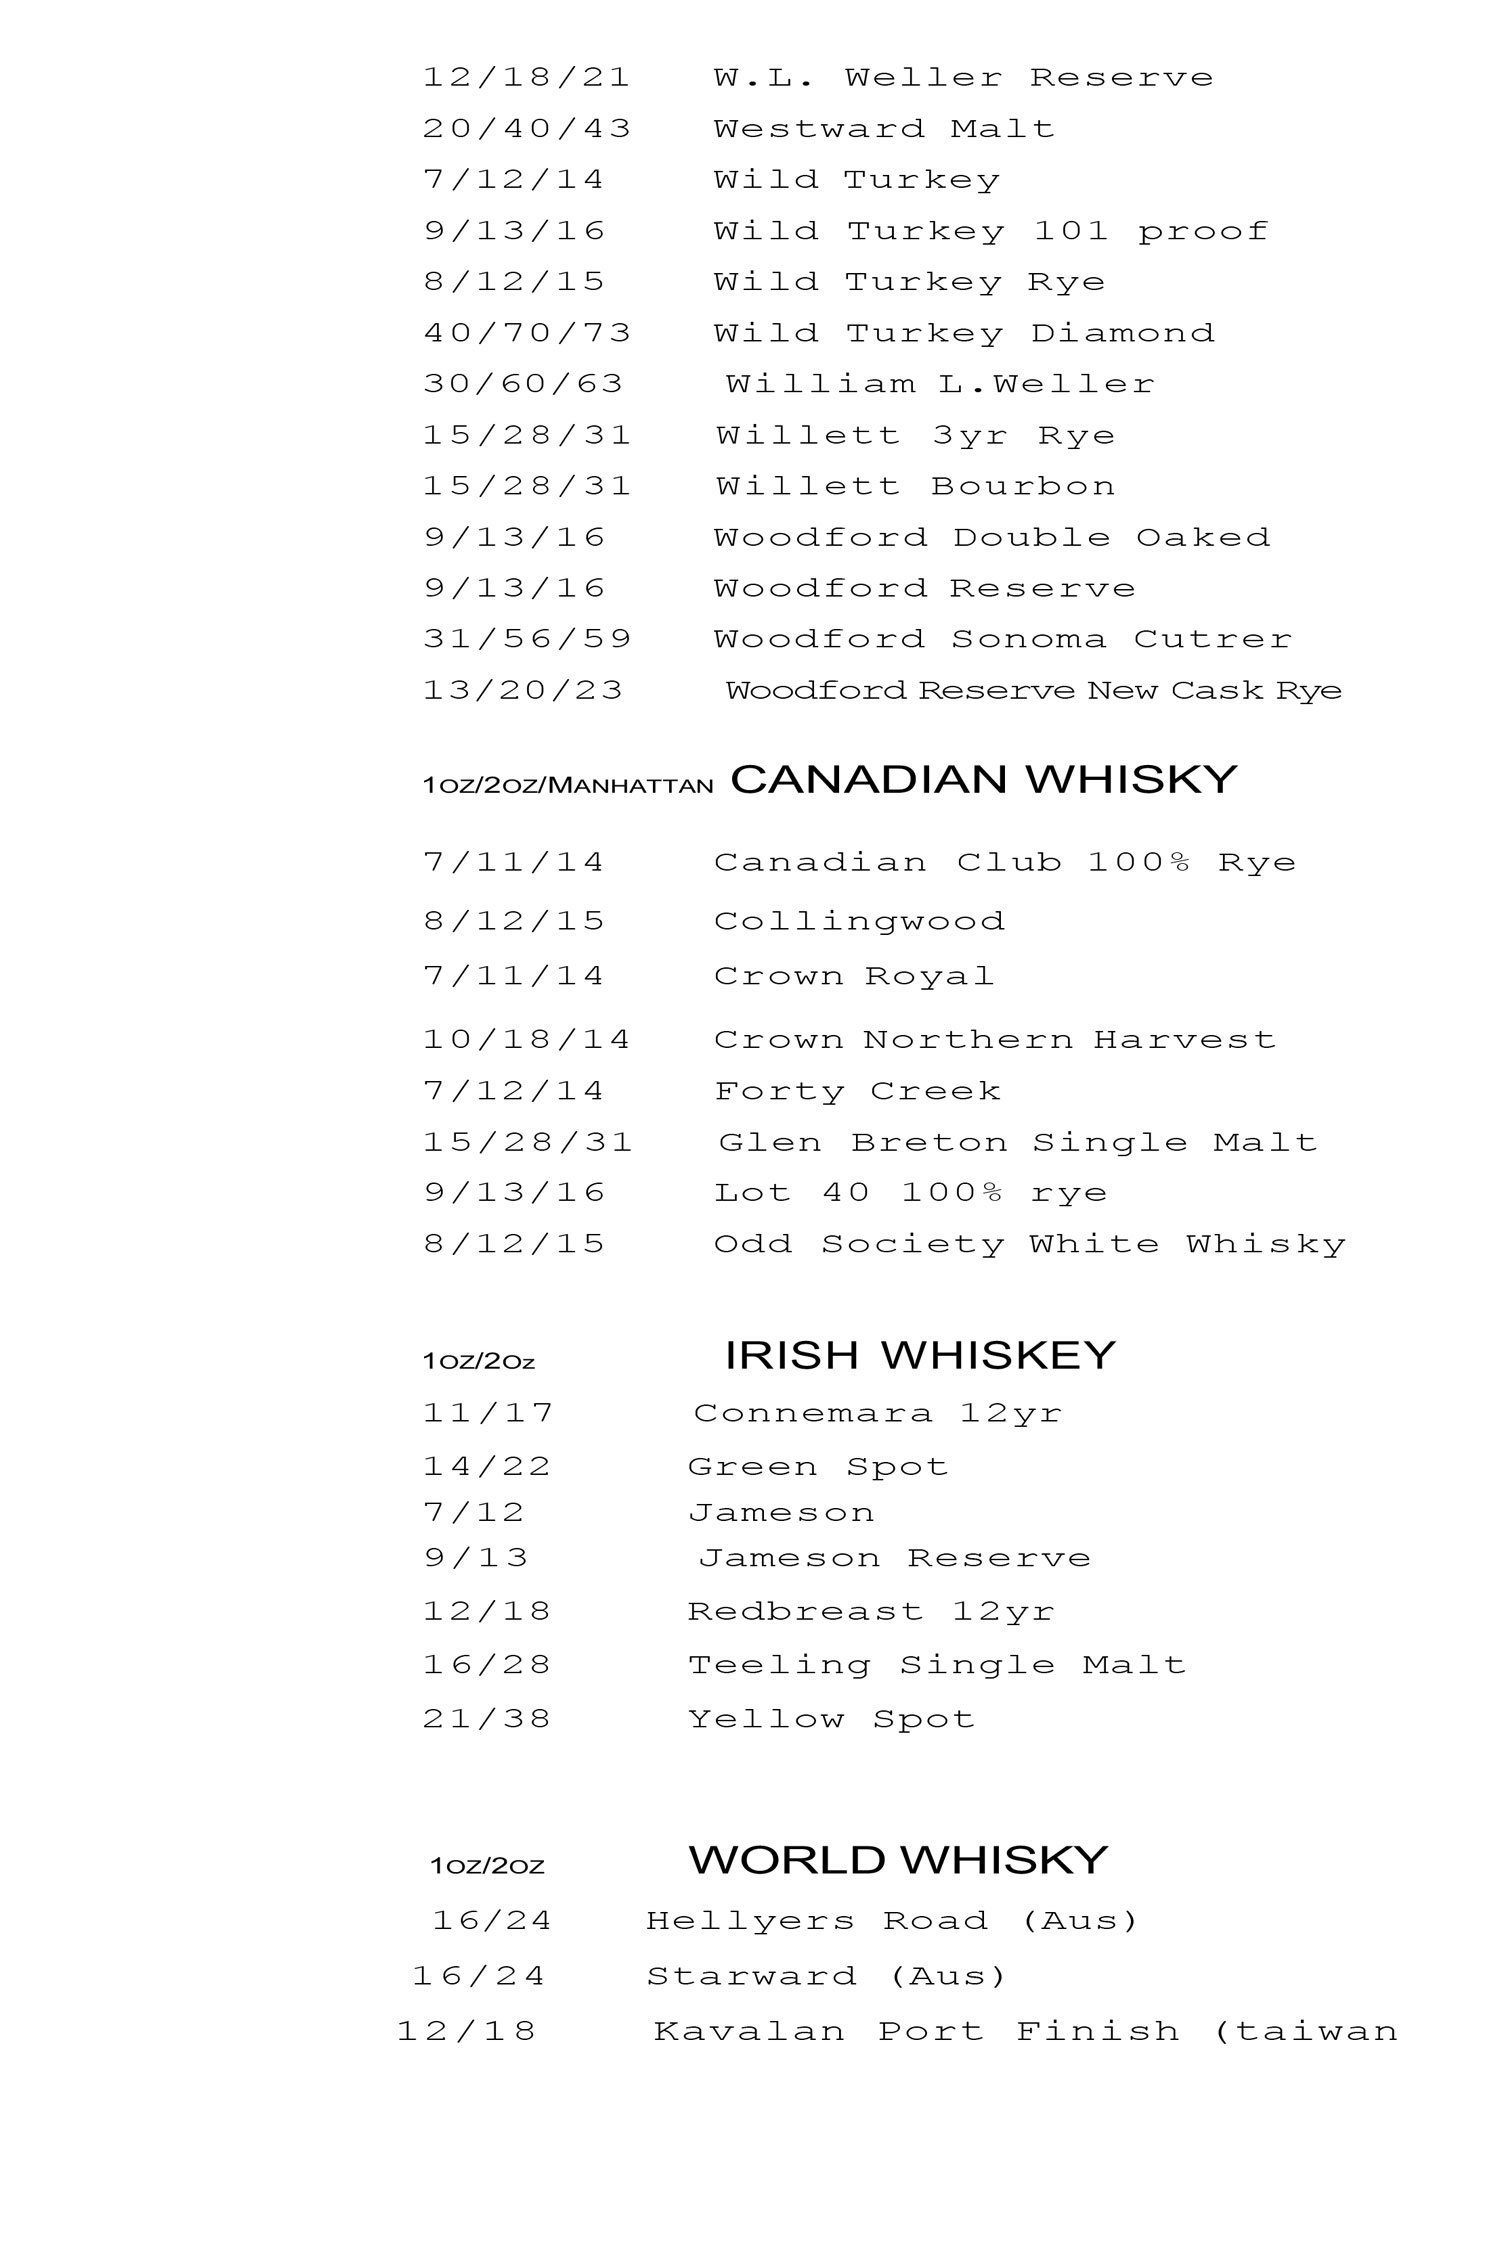 Whiskey list continued